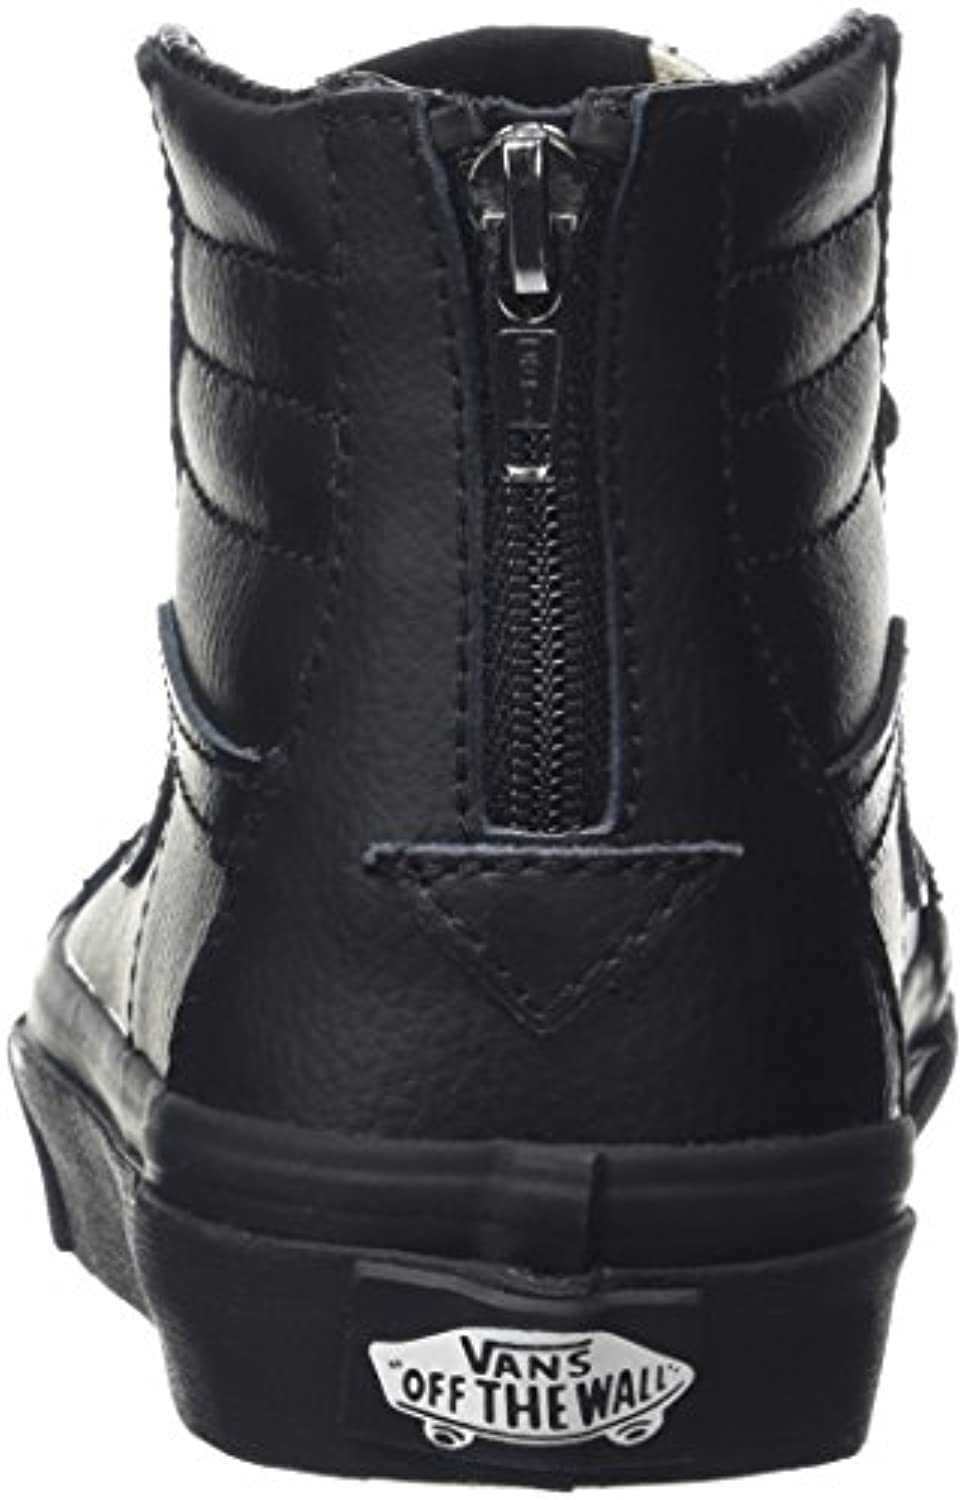 Vans Unisex Kids' SK8 Zip Hi-Top Sneakers, Black (Leather Black/Black), 1 UK